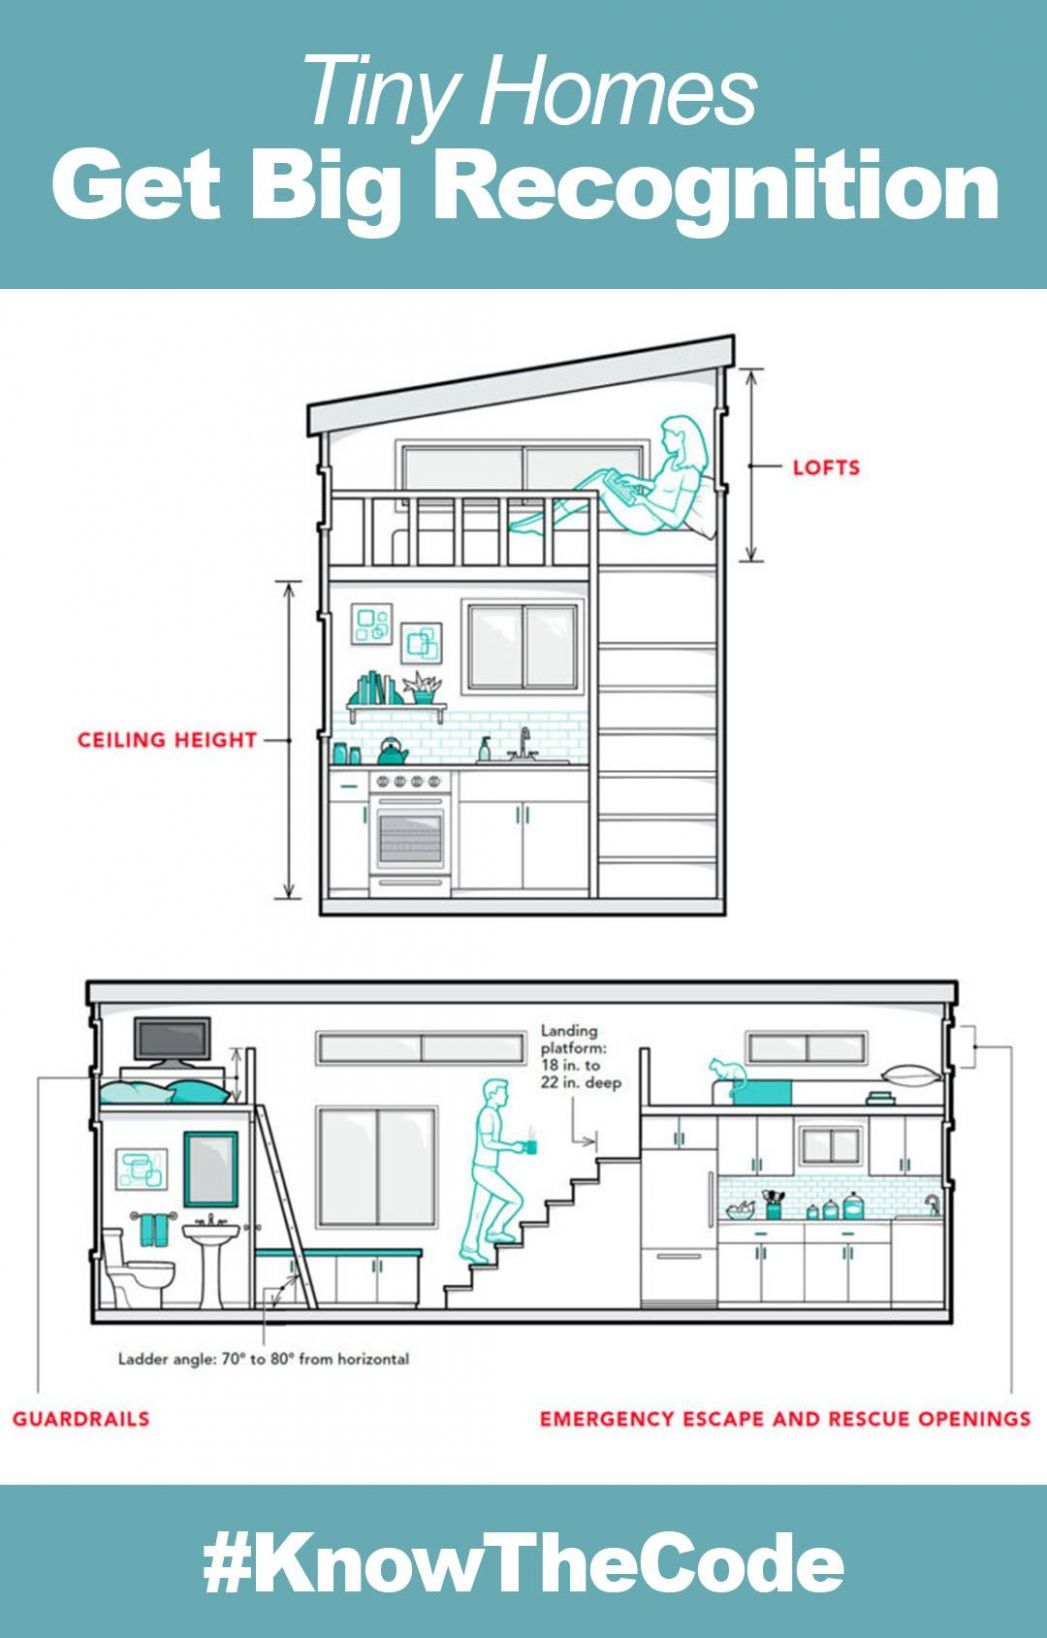 Tiny Homes Get Big Recognition (With images) | Tiny mobile house ...